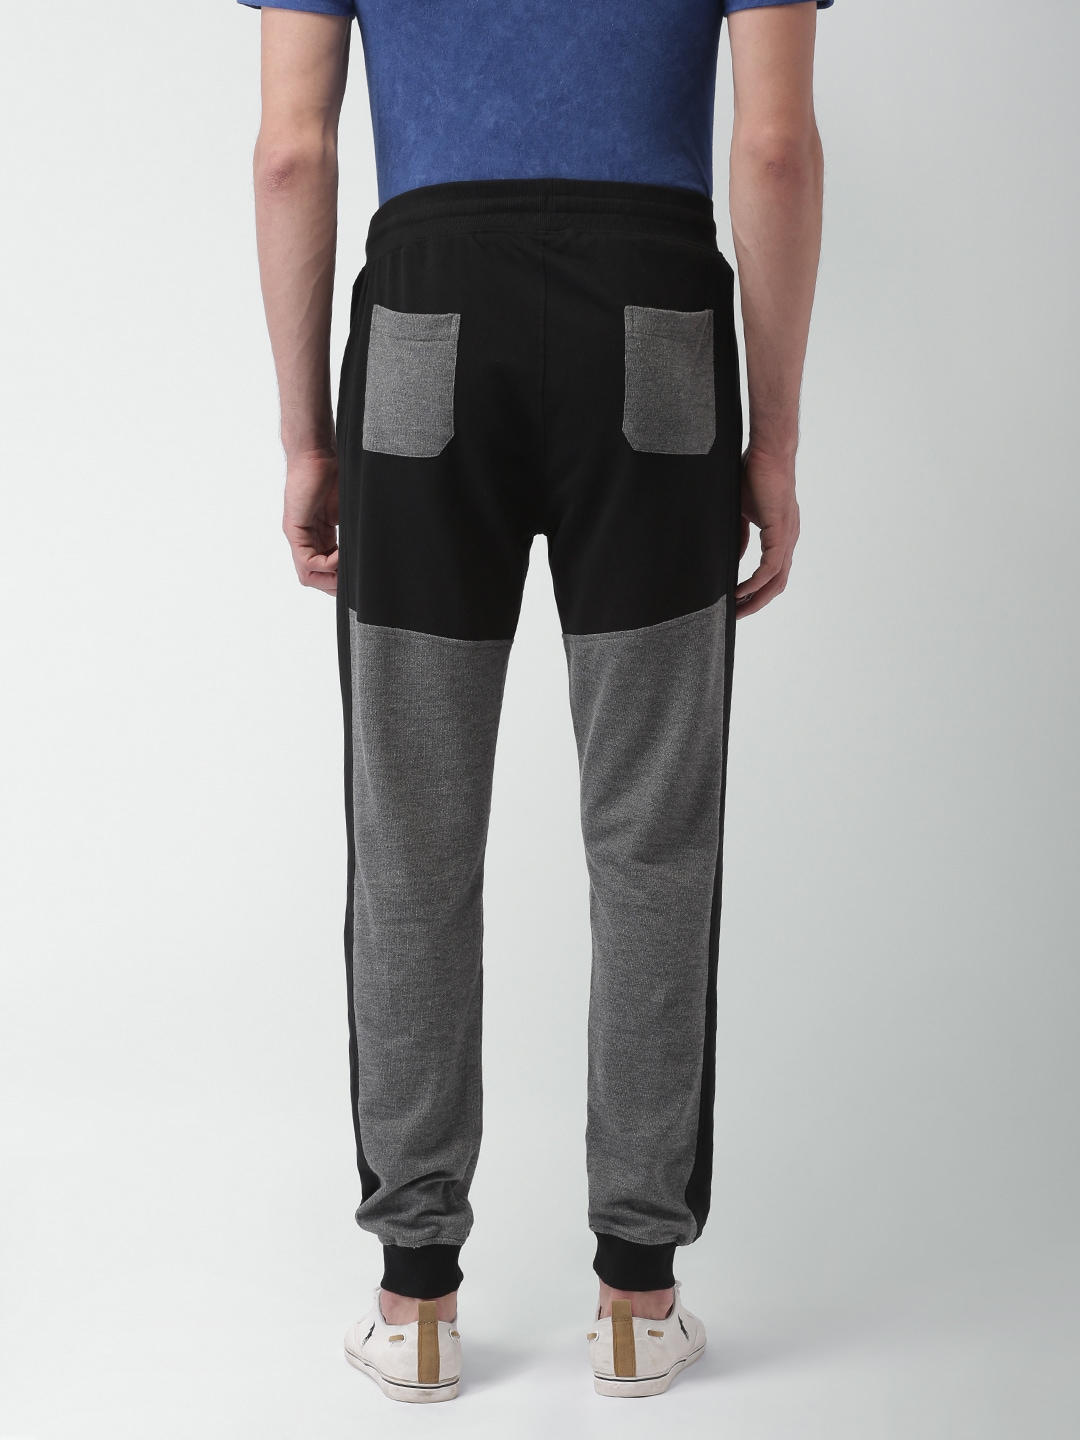 Blue Saint Men Grey& Black Colourblocked Straight Fit Joggers